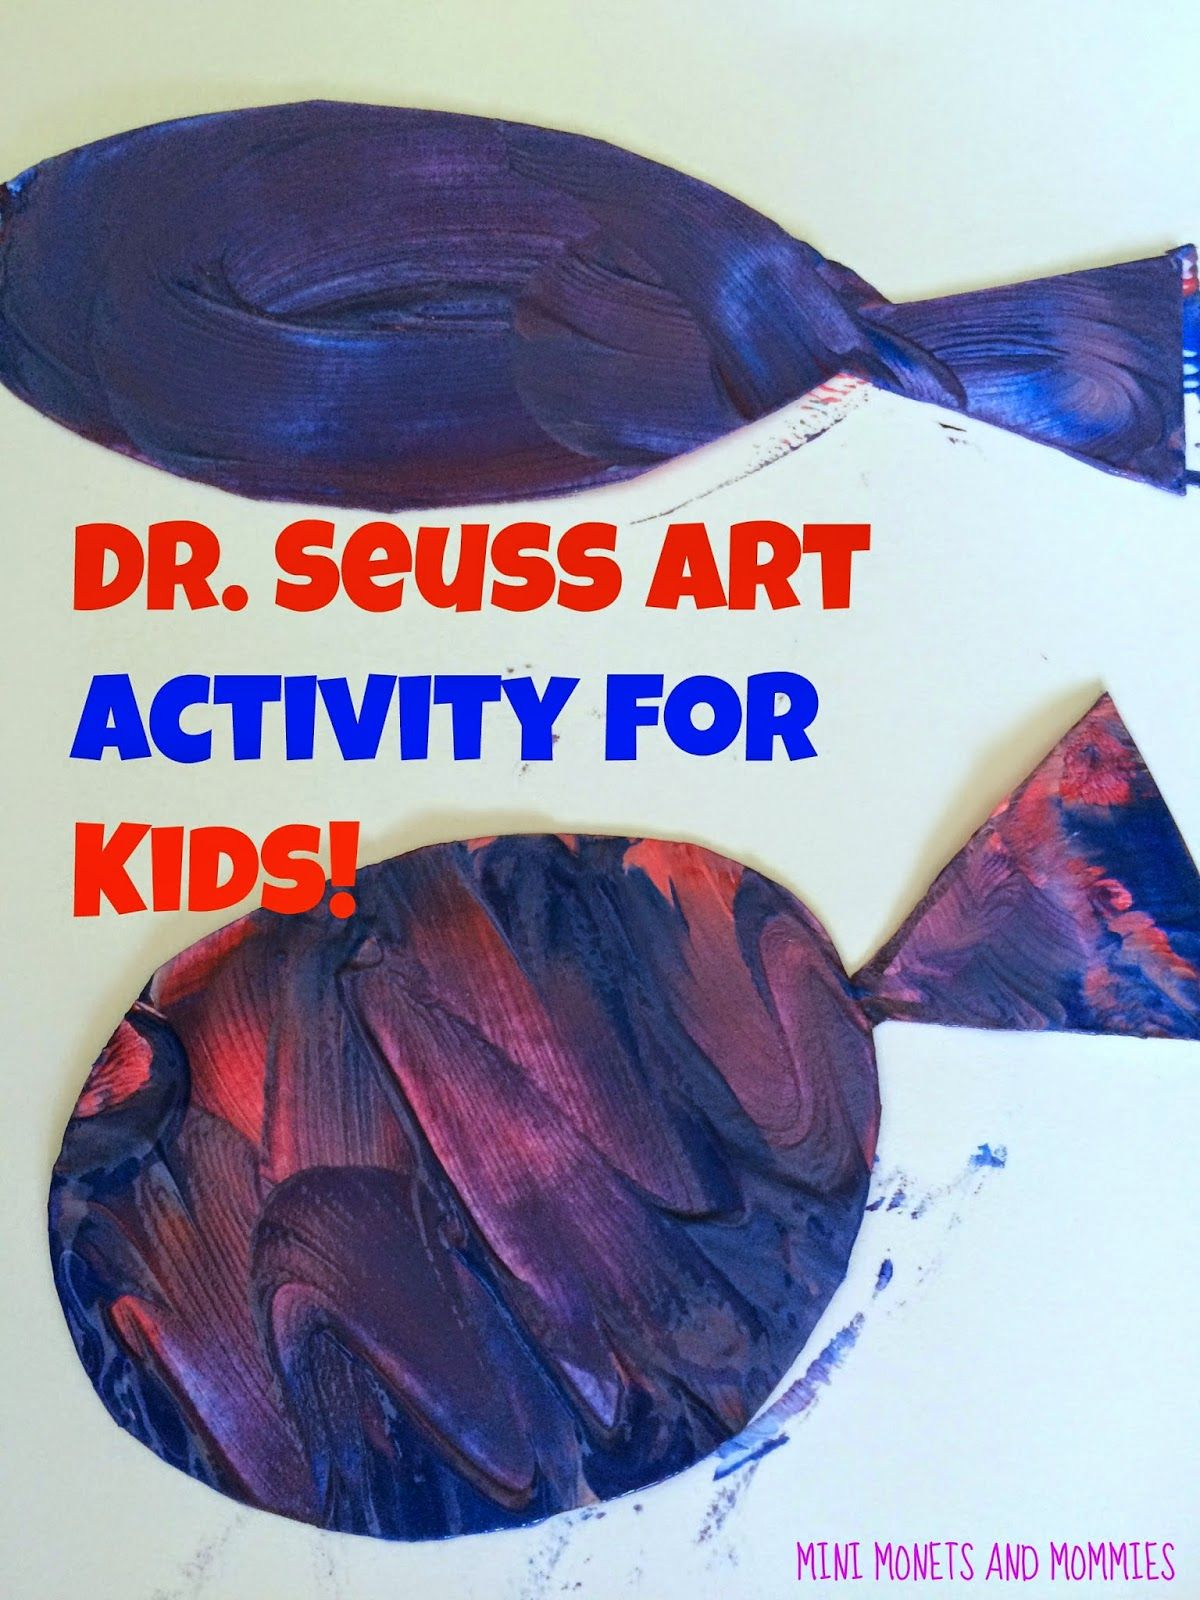 Dr. Seuss Art Activity: Color Mixing for Kids